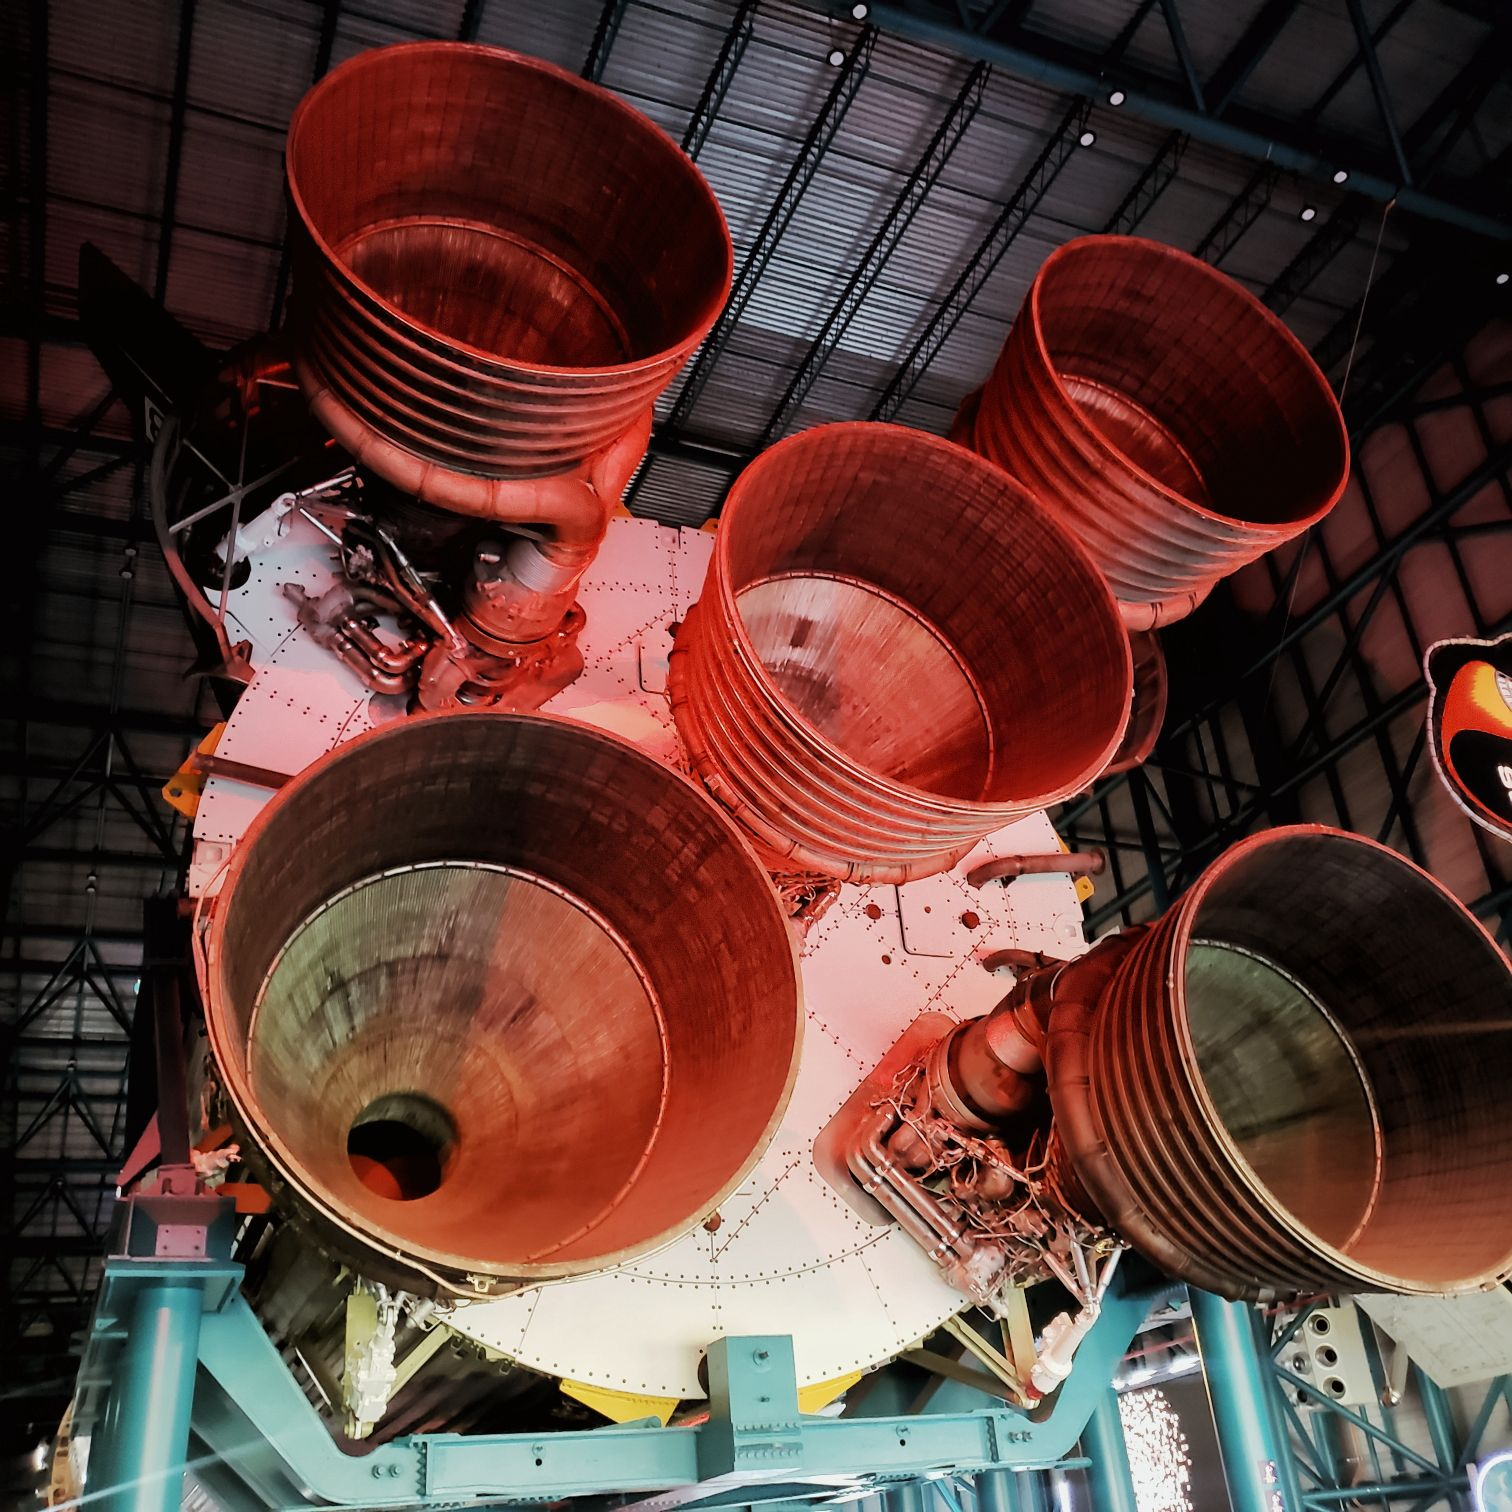 Real Saturn V Rocket Kennedy Space Center Orlando Florida